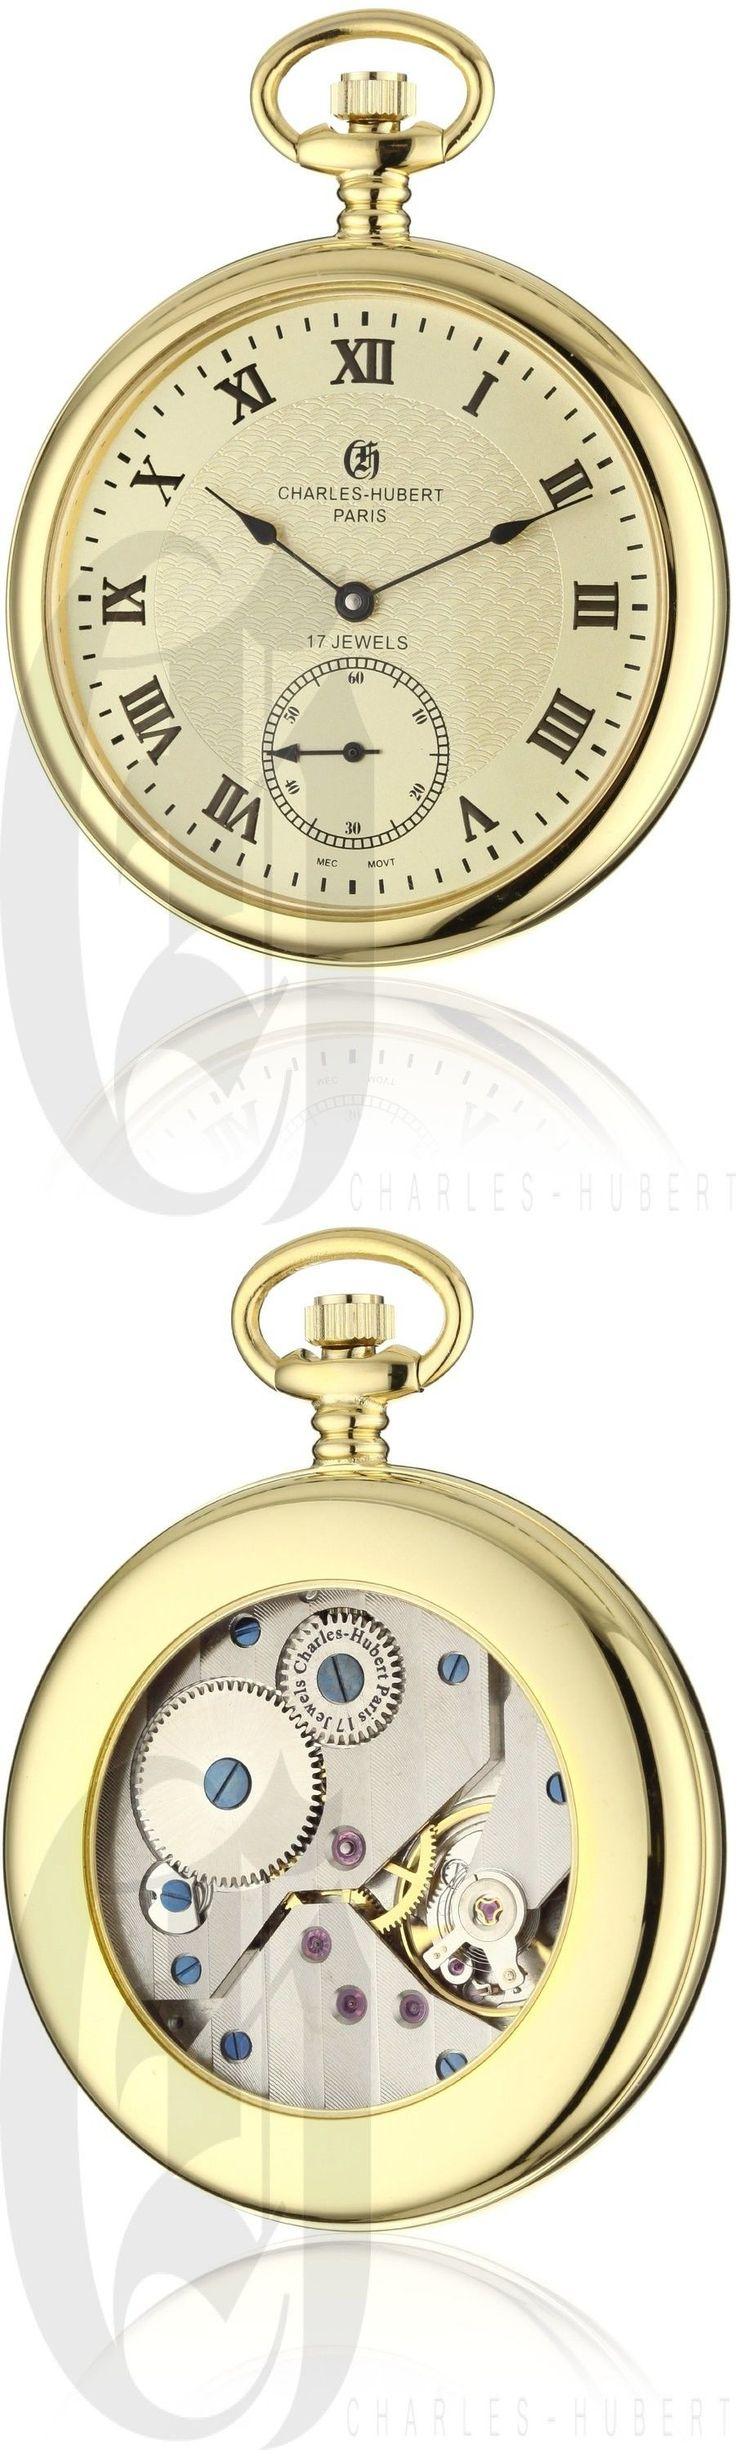 Modern 3938: Charles-Hubert Gold Stainless Steel Open Face Mechanical Pocket Watch - 3912-G BUY IT NOW ONLY: $169.0